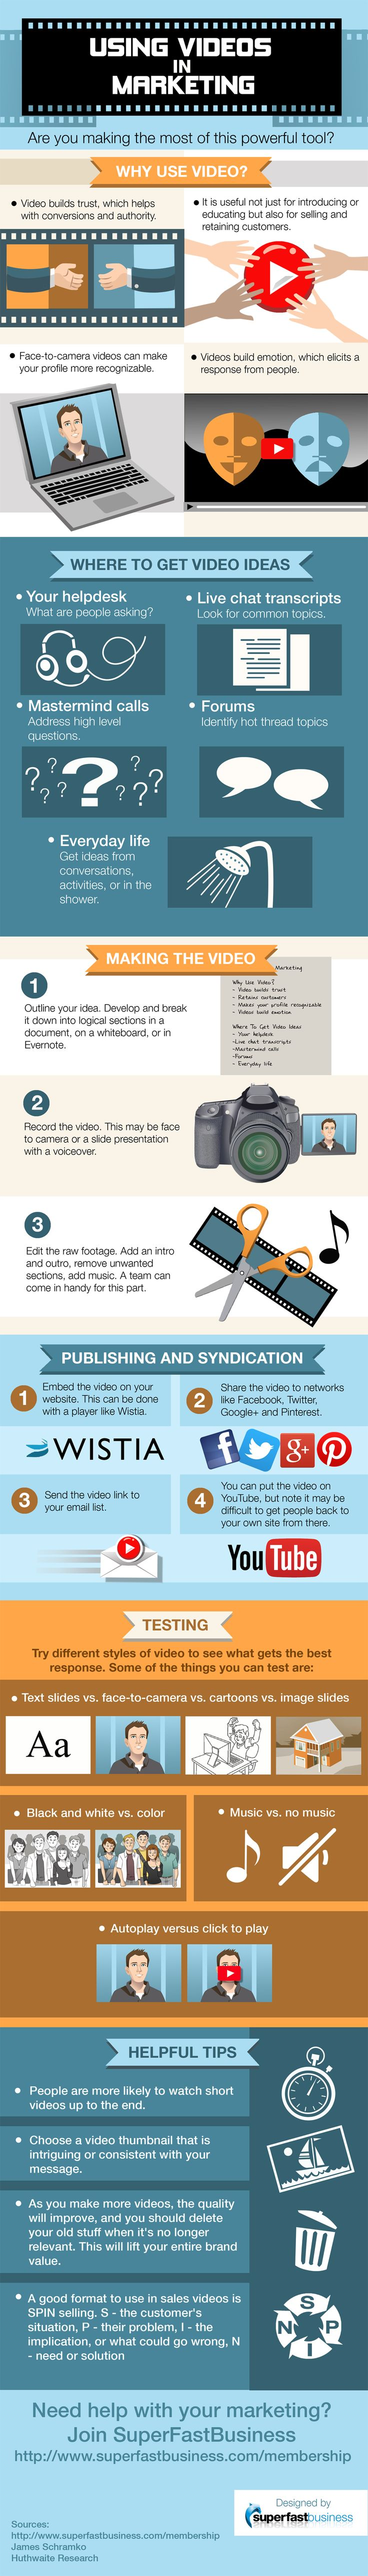 Using Videos In Marketing #infographic #Marketing #Videos #videomarketing #videomarketingtips #contentmarketinginfographic